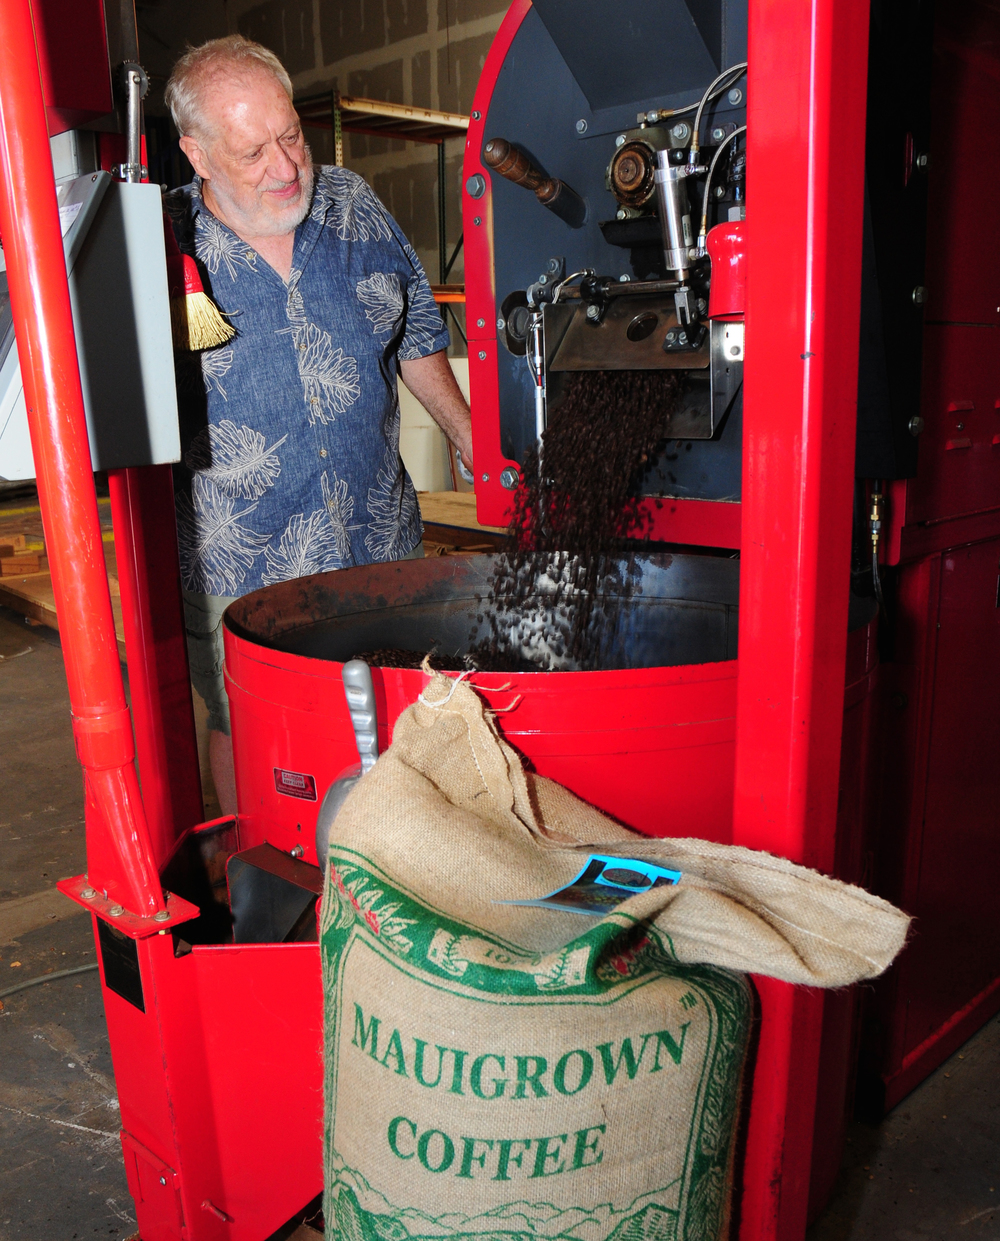 Jeff Ferguson of MauiGrown Coffee Company Store checks the freshly roasted Maui Mokka for quality and consistency.